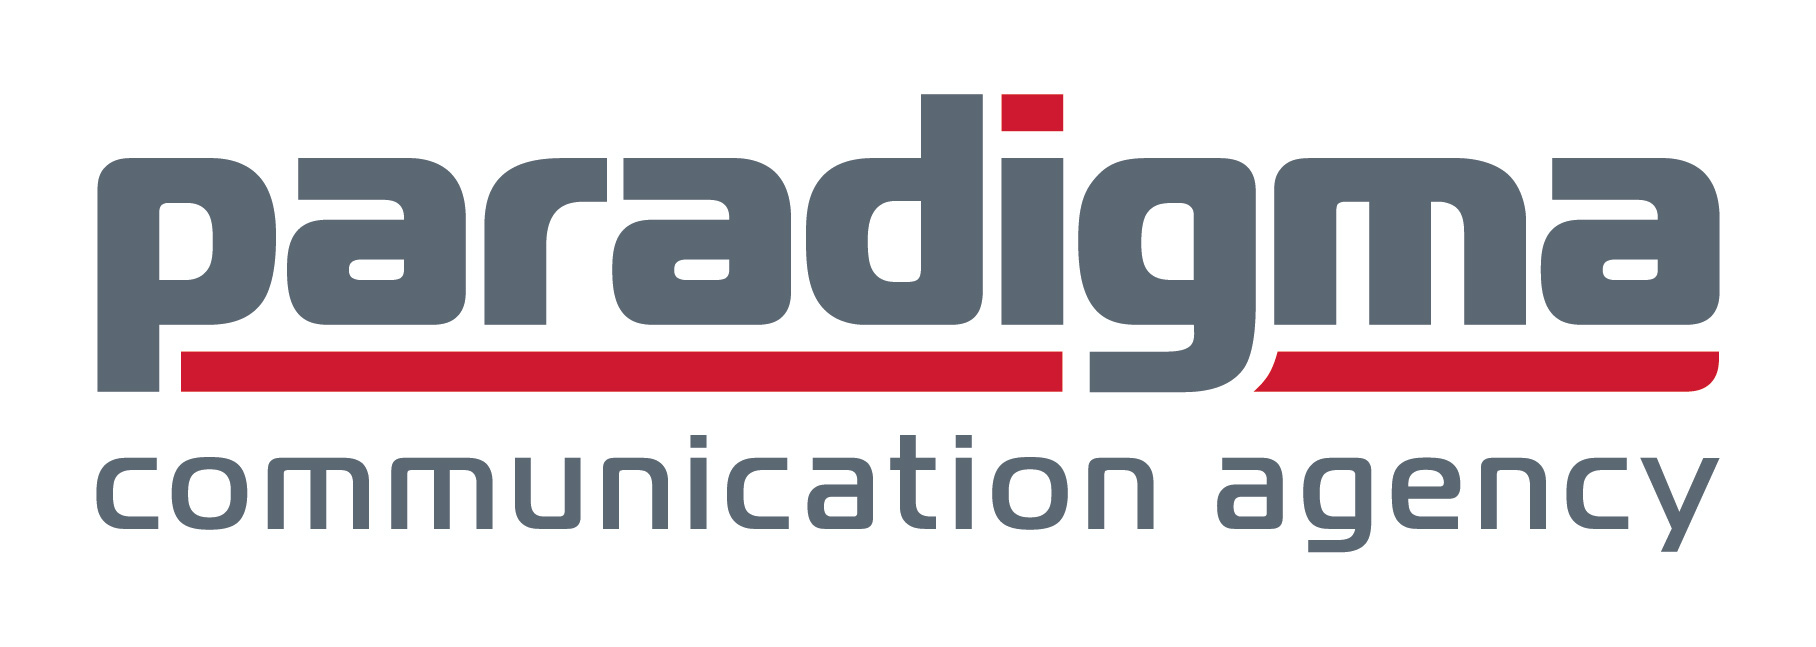 Paradigma Communications Agency